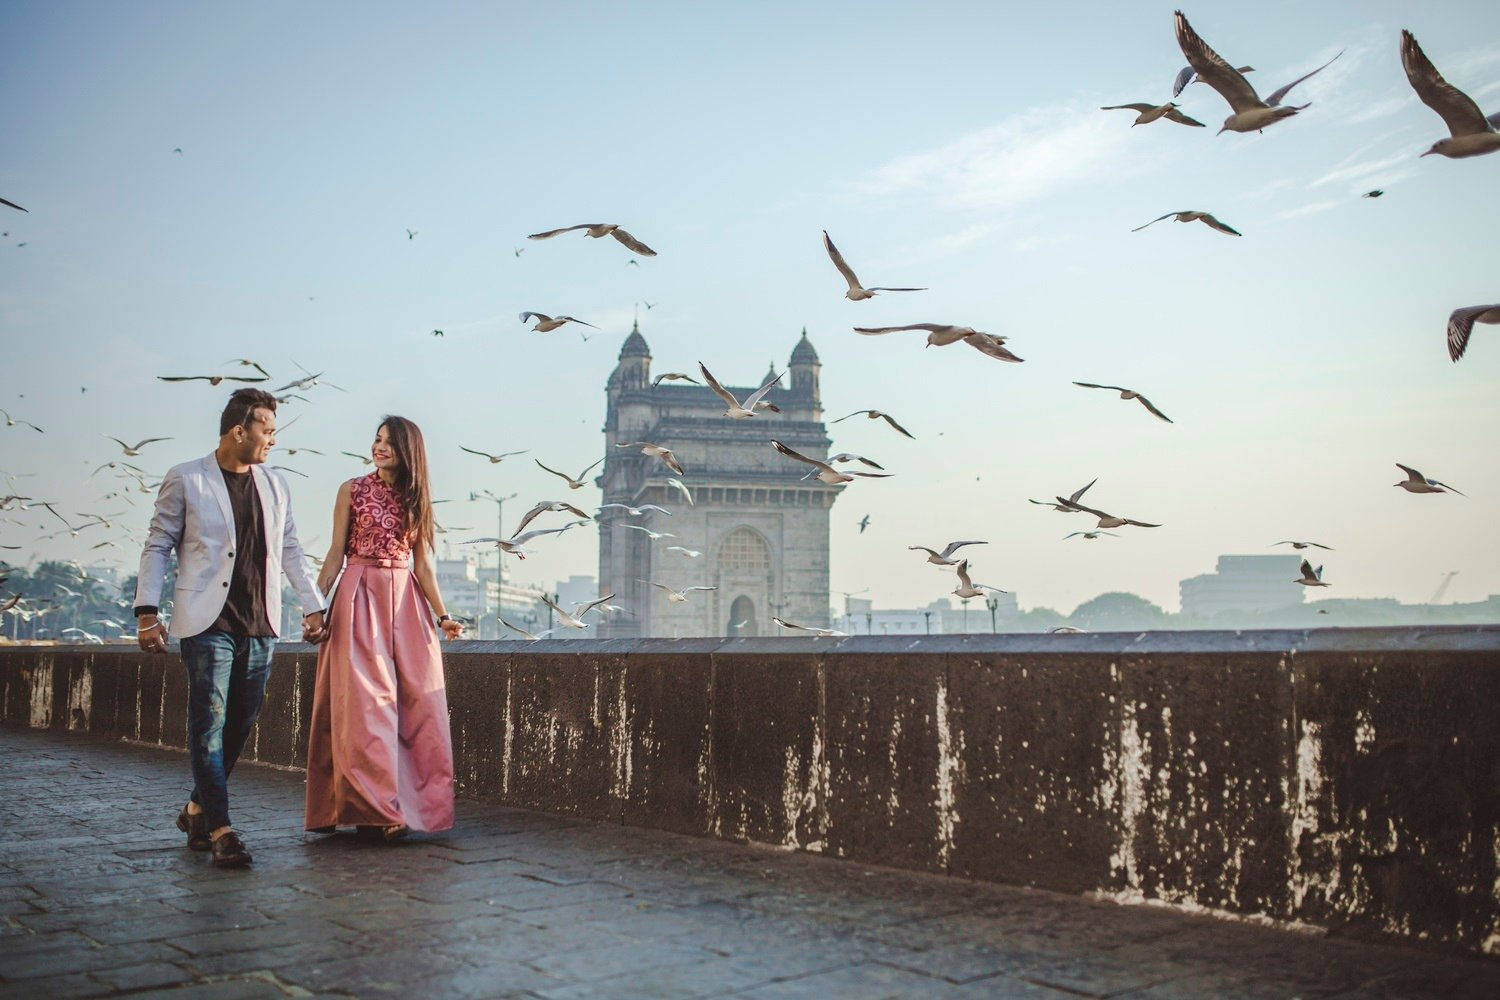 Offbeat & Romantic Pre Wedding Destinations in Mumbai To Capture Your Fairytale Love Story